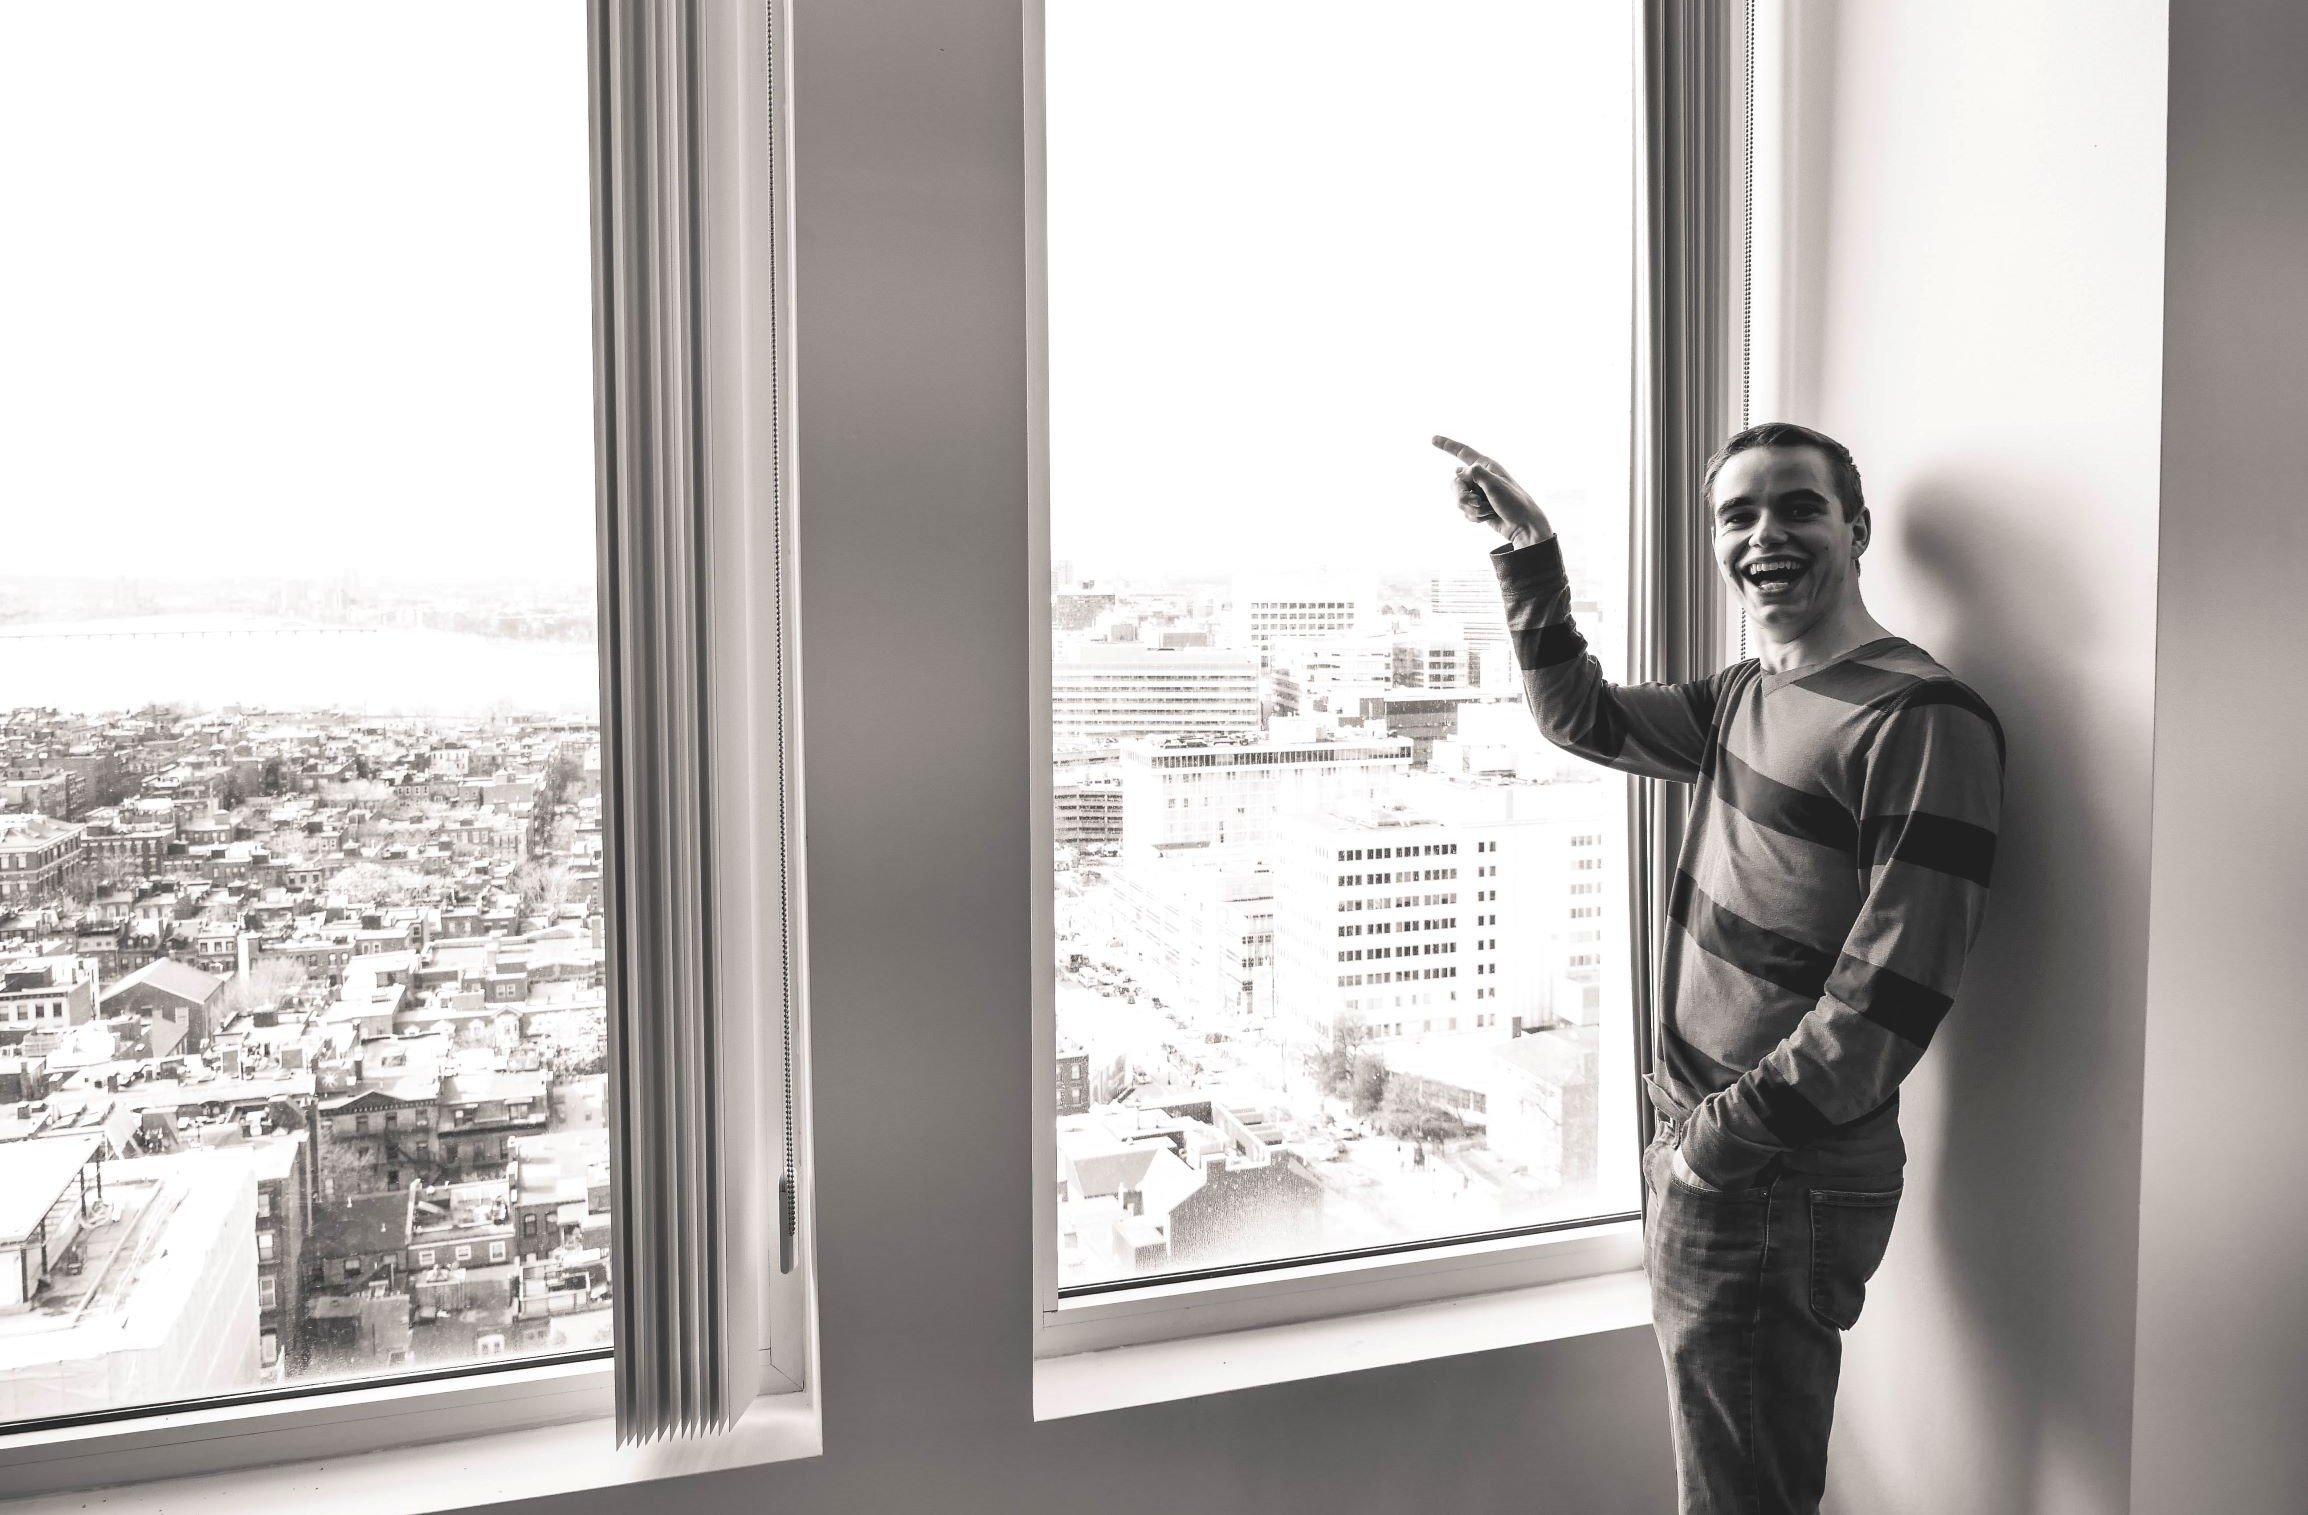 Young man points out window to possibilities